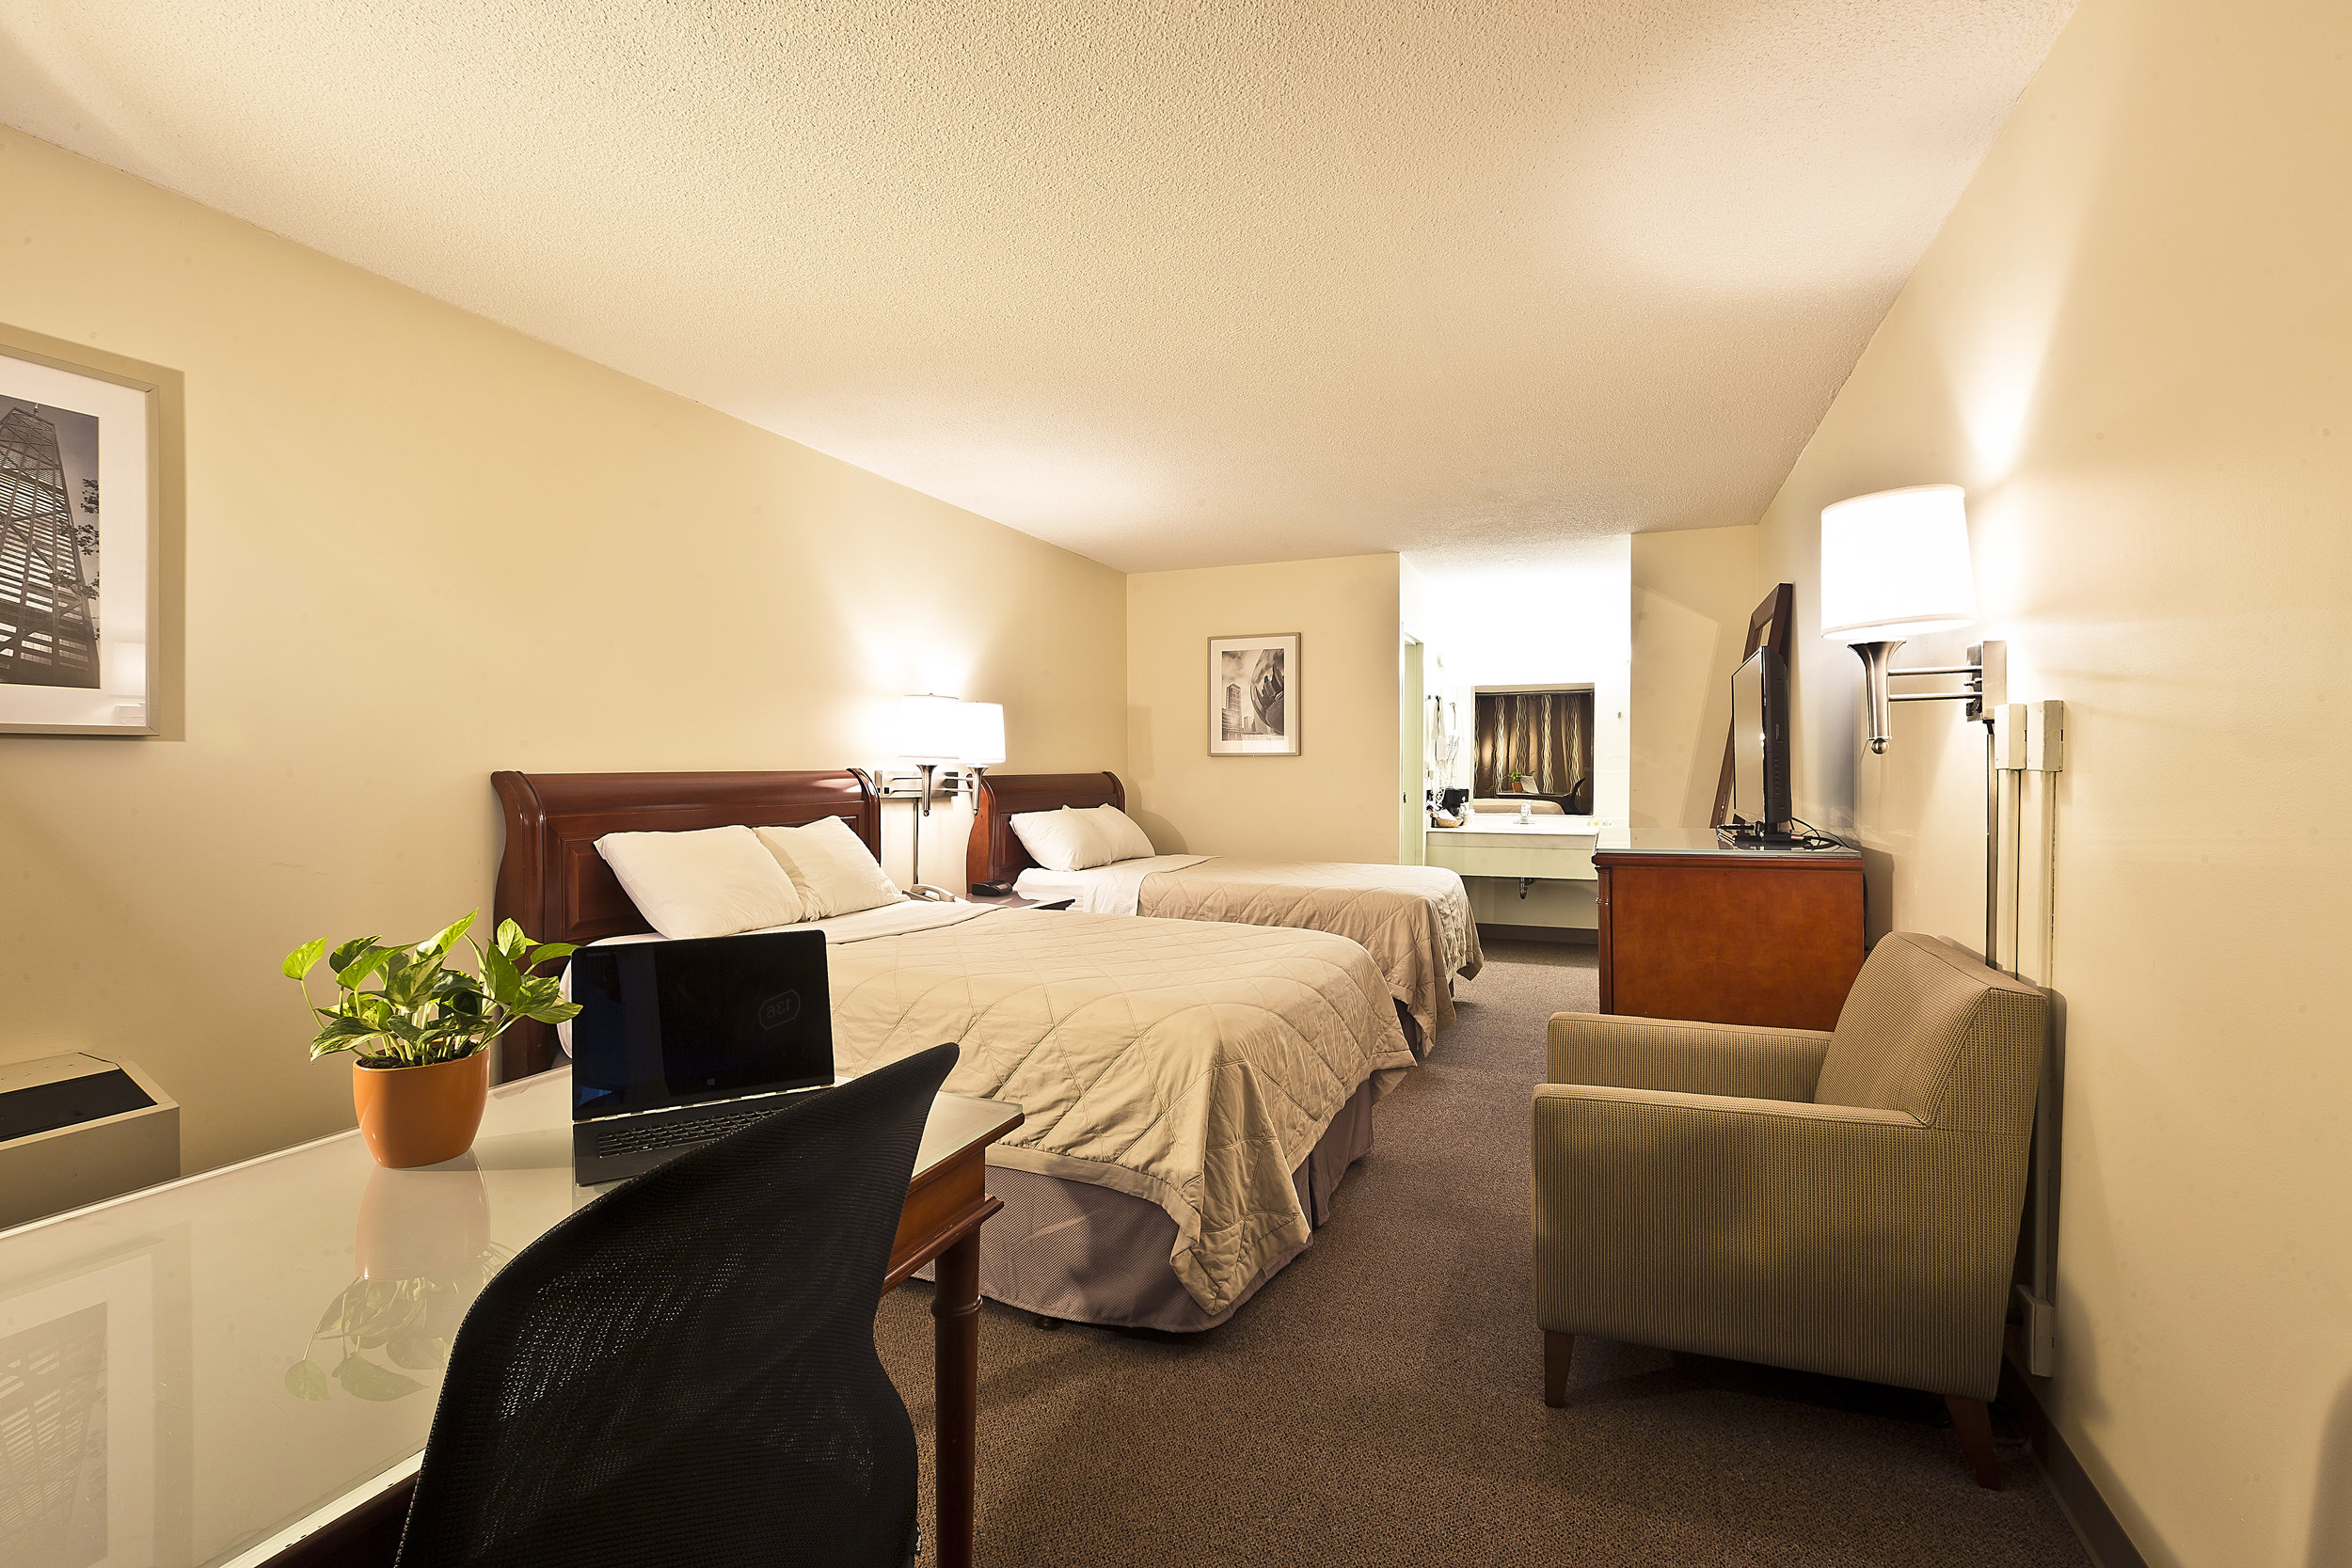 garden hotel south beloit guest rooms 001.jpg